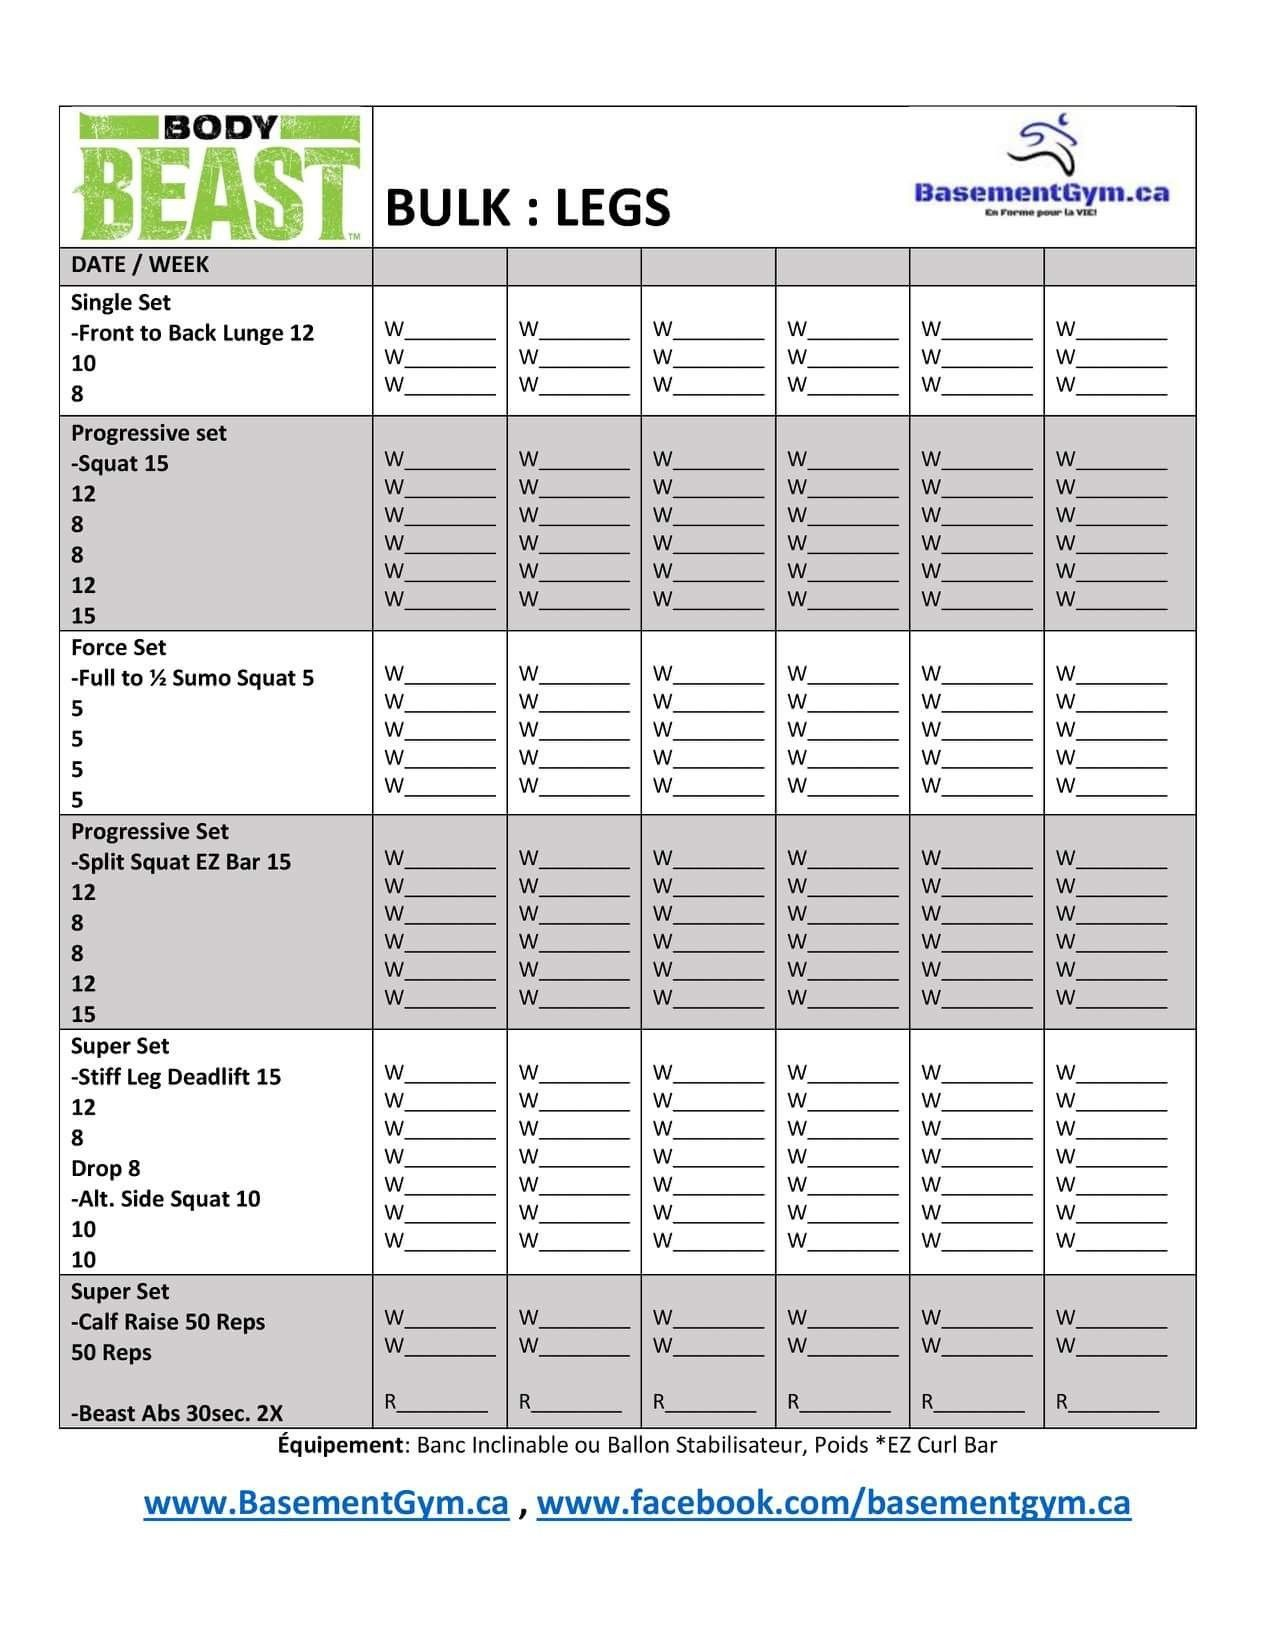 Body Beast Bulk Legs Worksheet